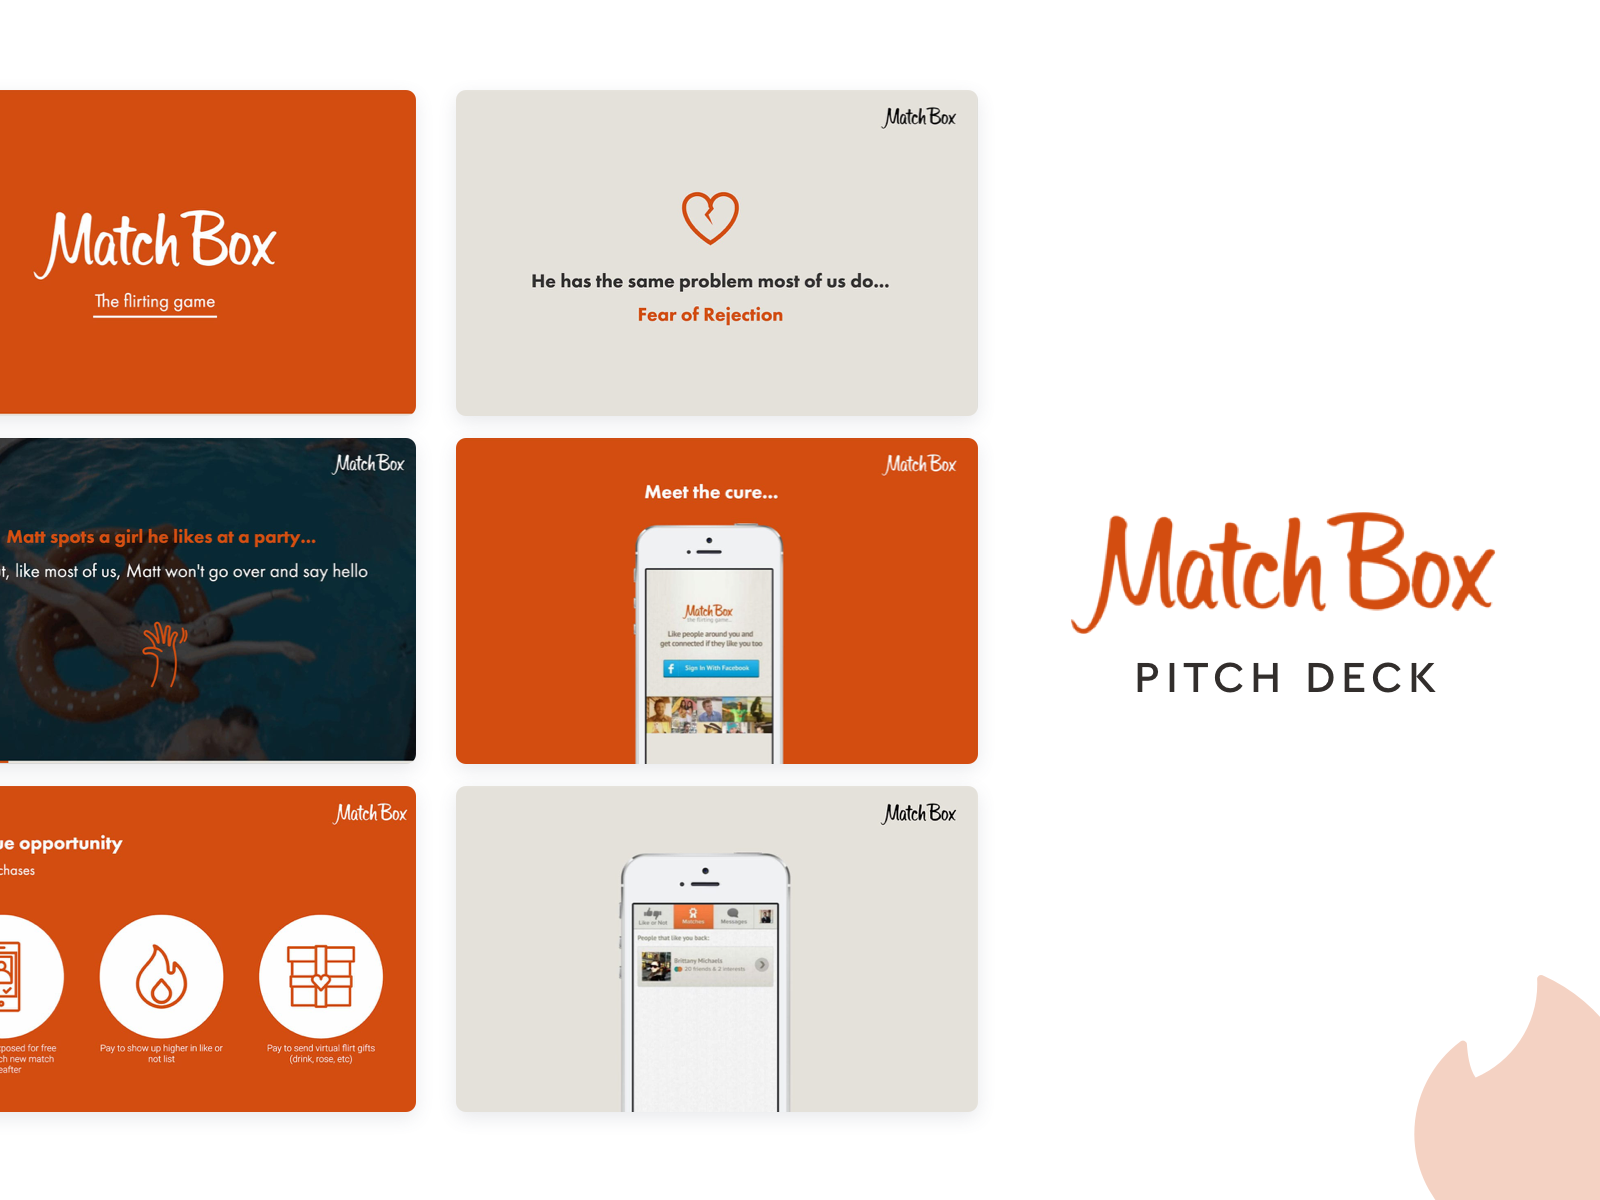 Match Box (Tinder) Pitch Deck Template by Slidebean on Dribbble